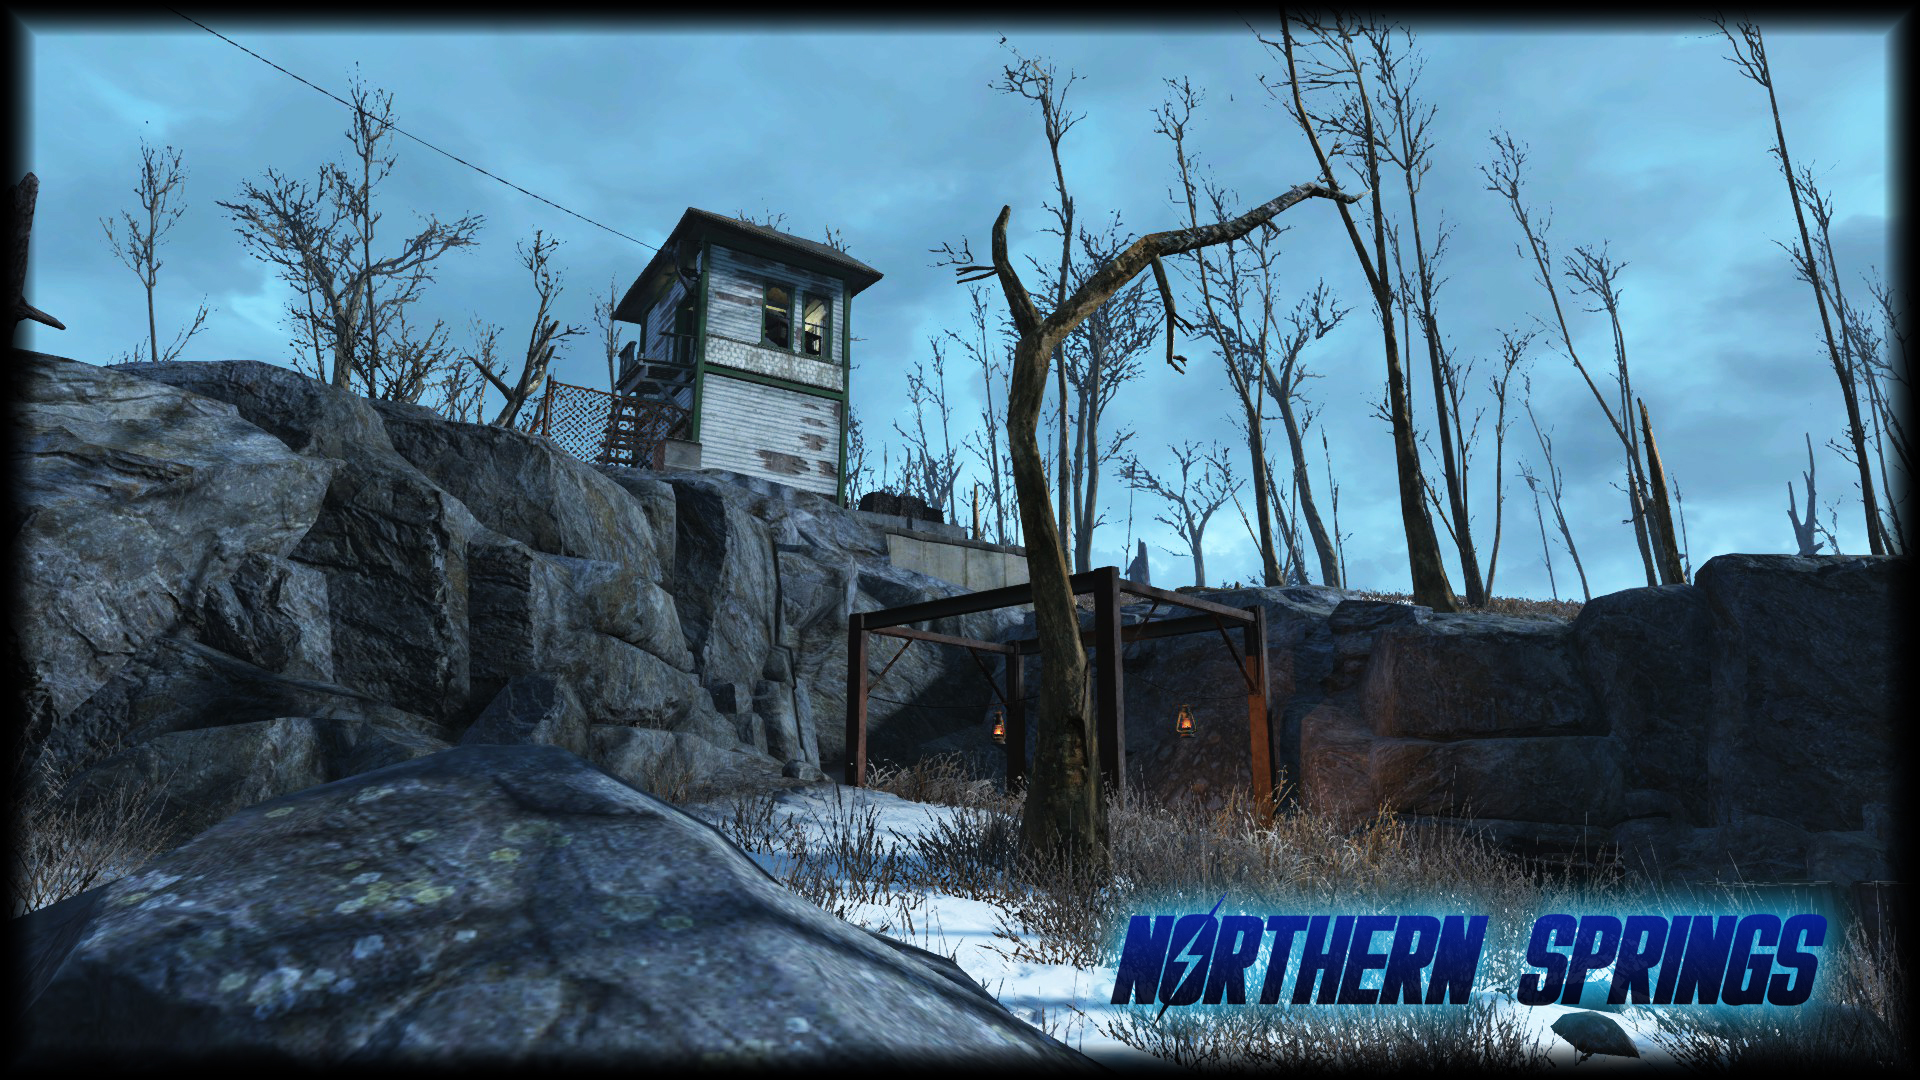 Fallout 4 Northern Springs is a huge fan DLC with snowy new